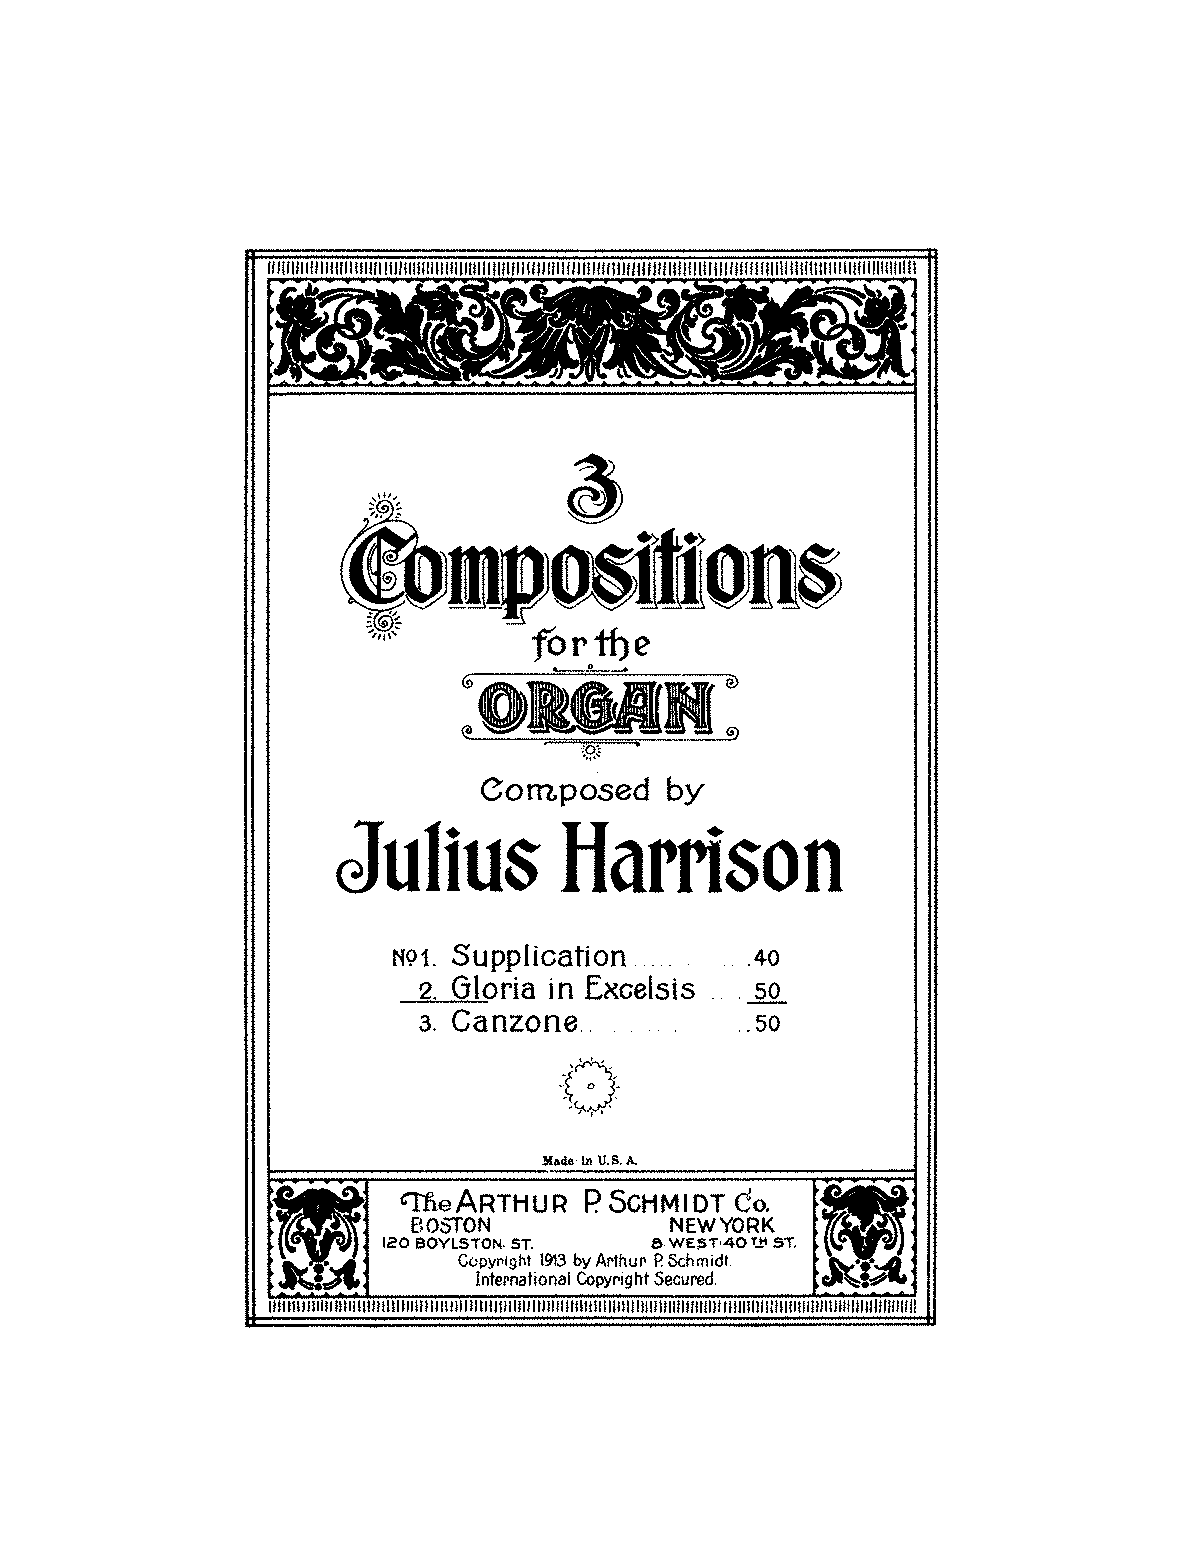 PMLP656320-Harrison 3 Compositions for Organ, No.2 - Gloria in excelsis.pdf